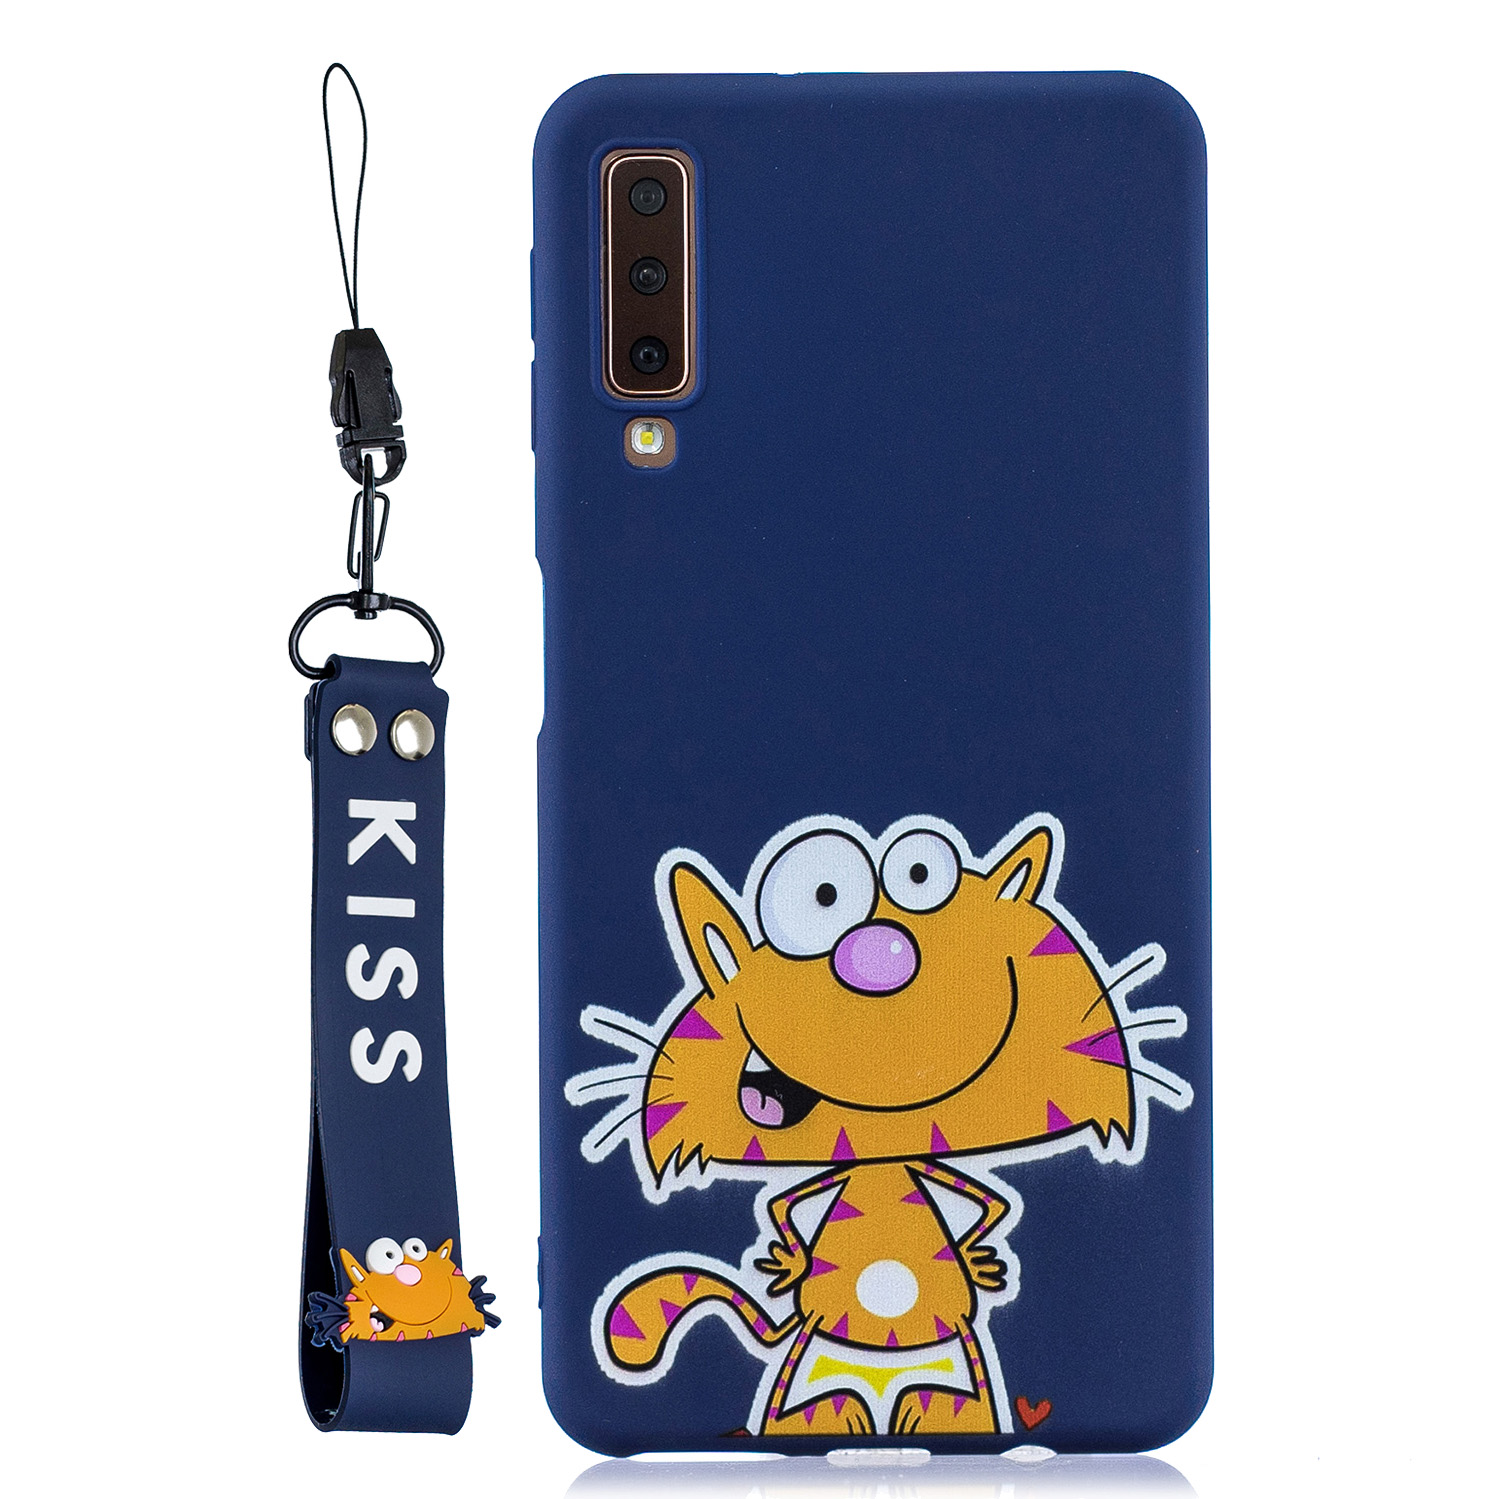 For Samsung A7 2018 Cartoon Lovely Coloured Painted Soft TPU Back Cover Non-slip Shockproof Full Protective Case with Lanyard sapphire